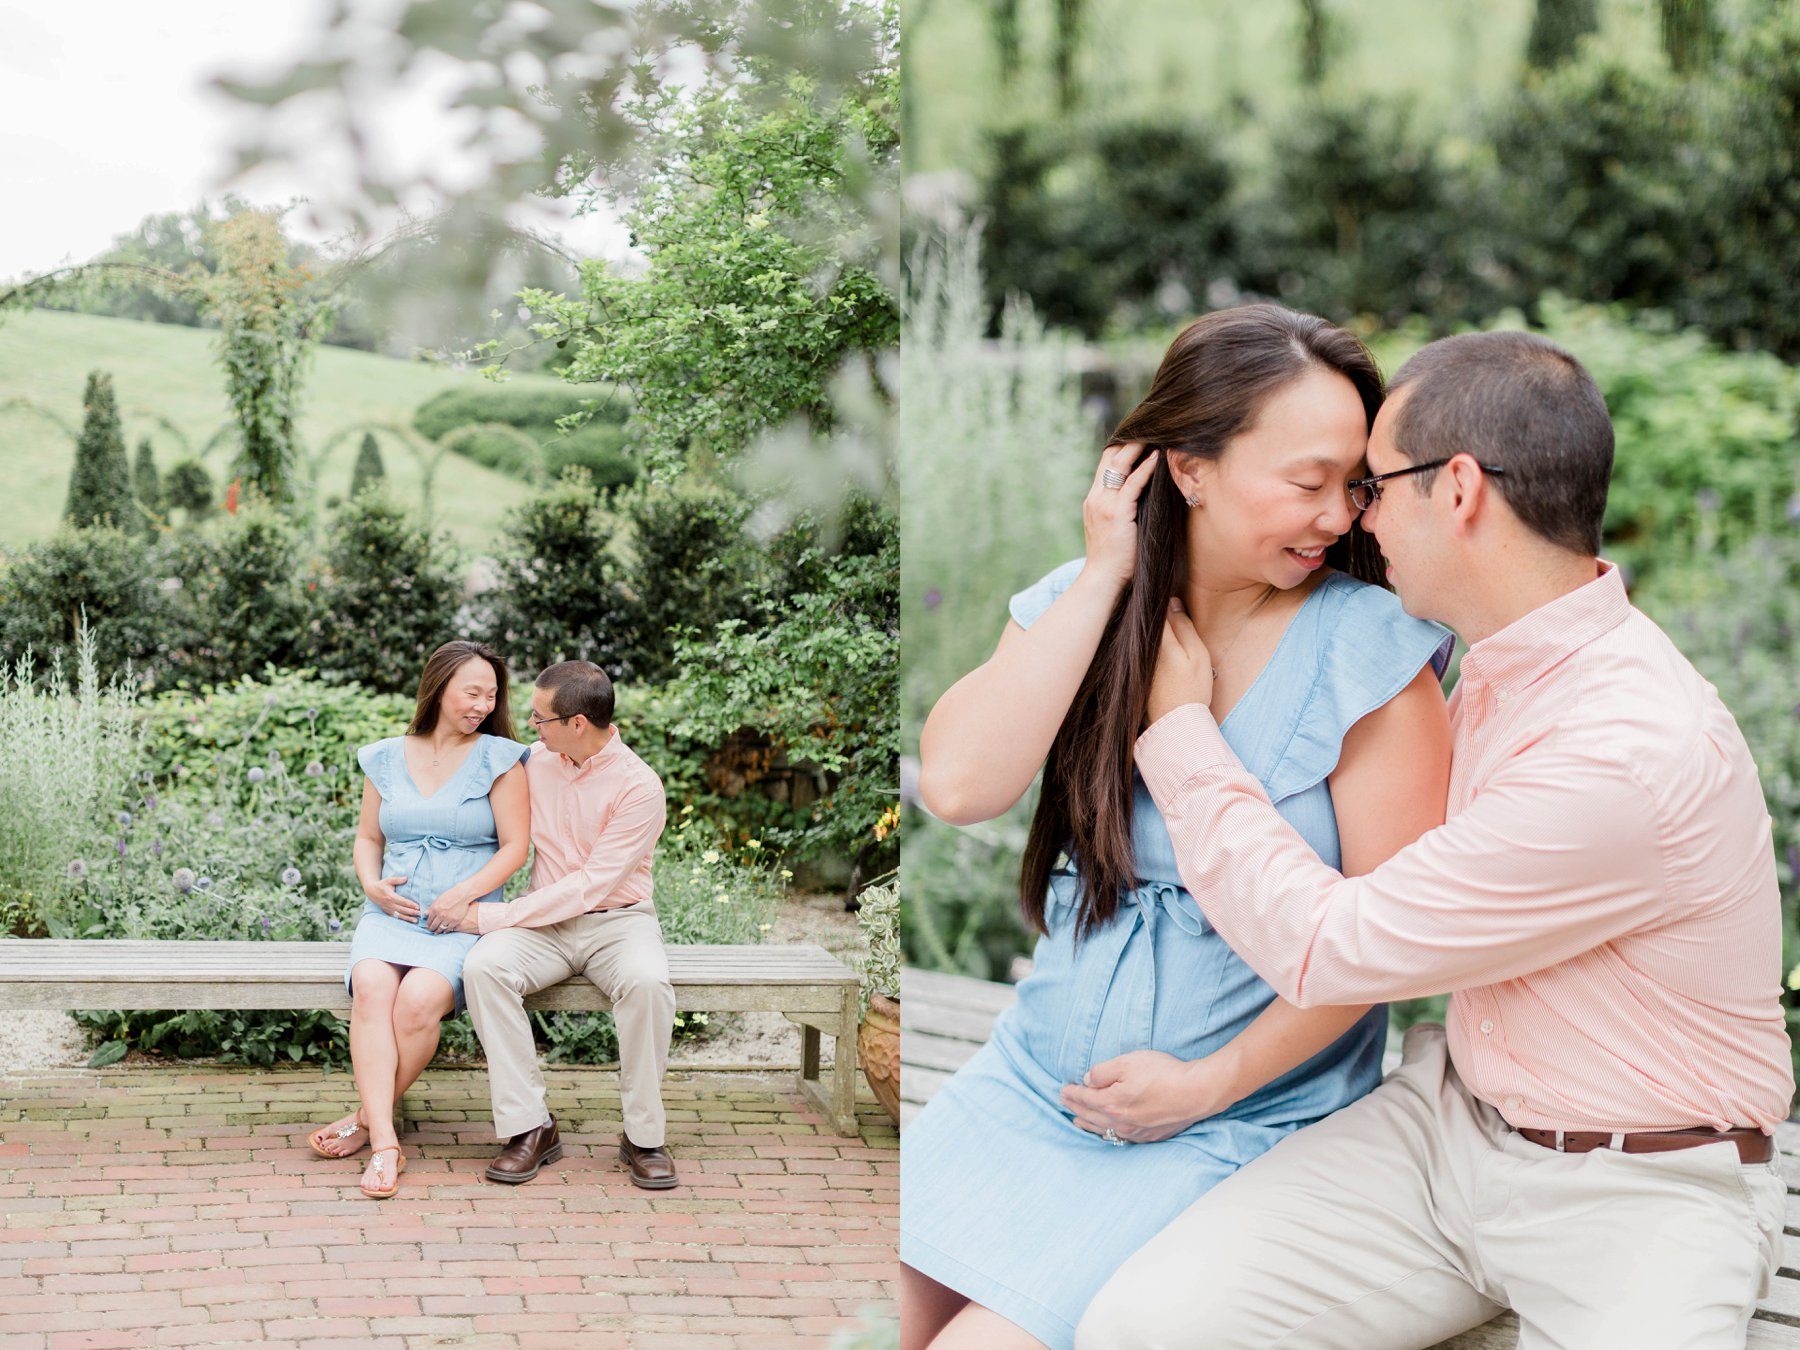 Longwood_Gardens_Maternity_Session_26